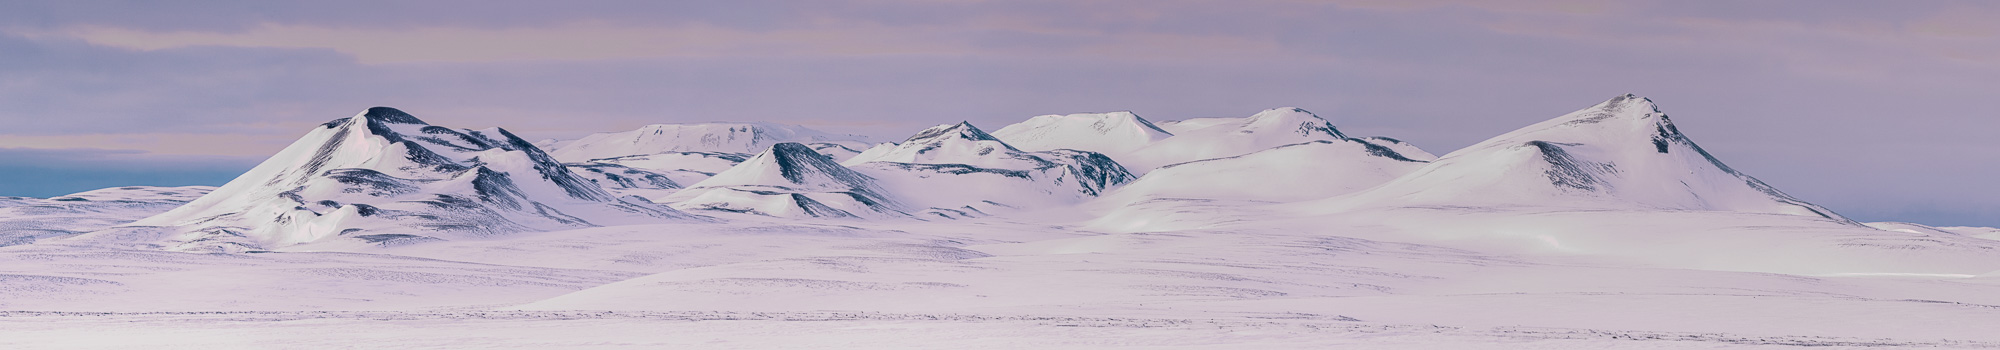 Snowy mountains in Iceland